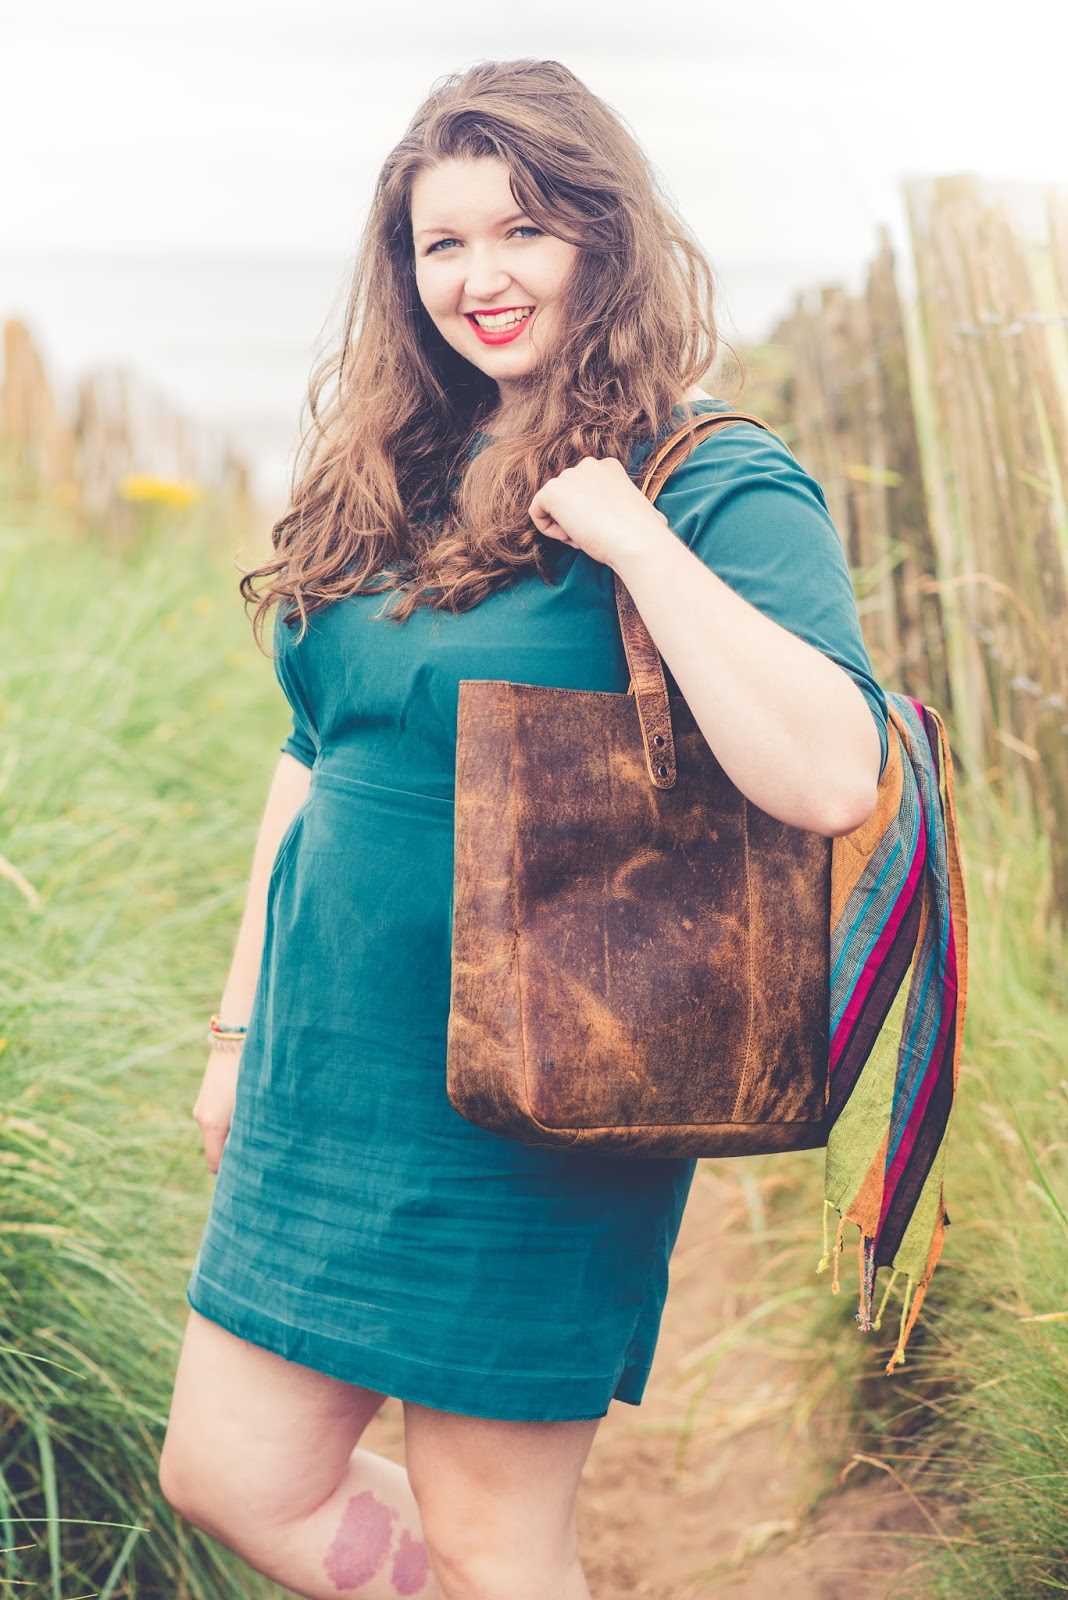 liquidgrain liquid grain Scaramanga Leather Shopper Tote Bag Review & Look